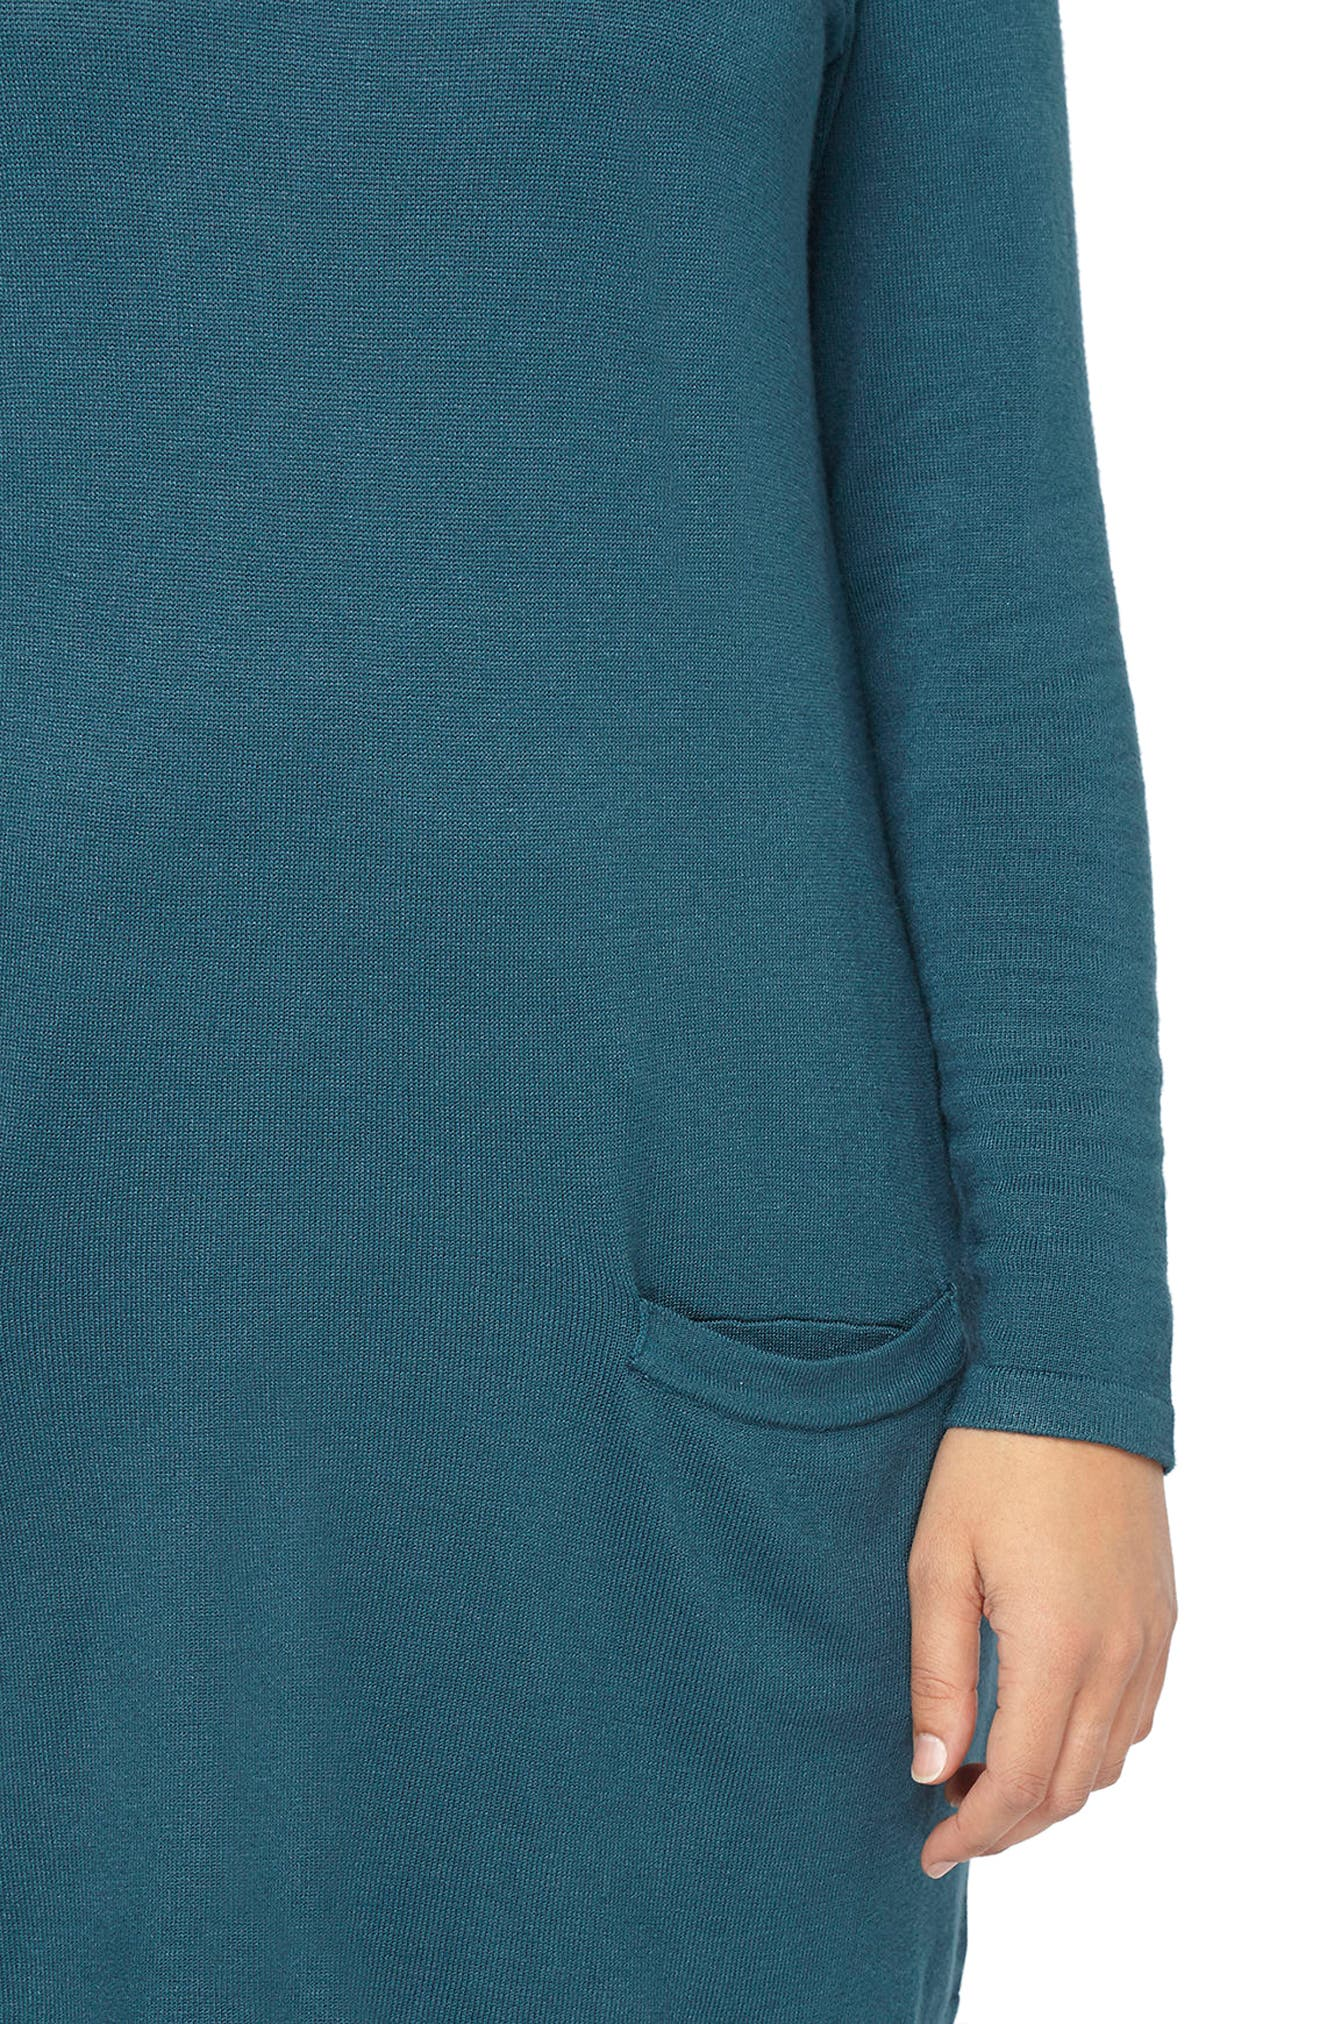 Front Pocket Textured Tunic Sweater,                             Alternate thumbnail 3, color,                             440